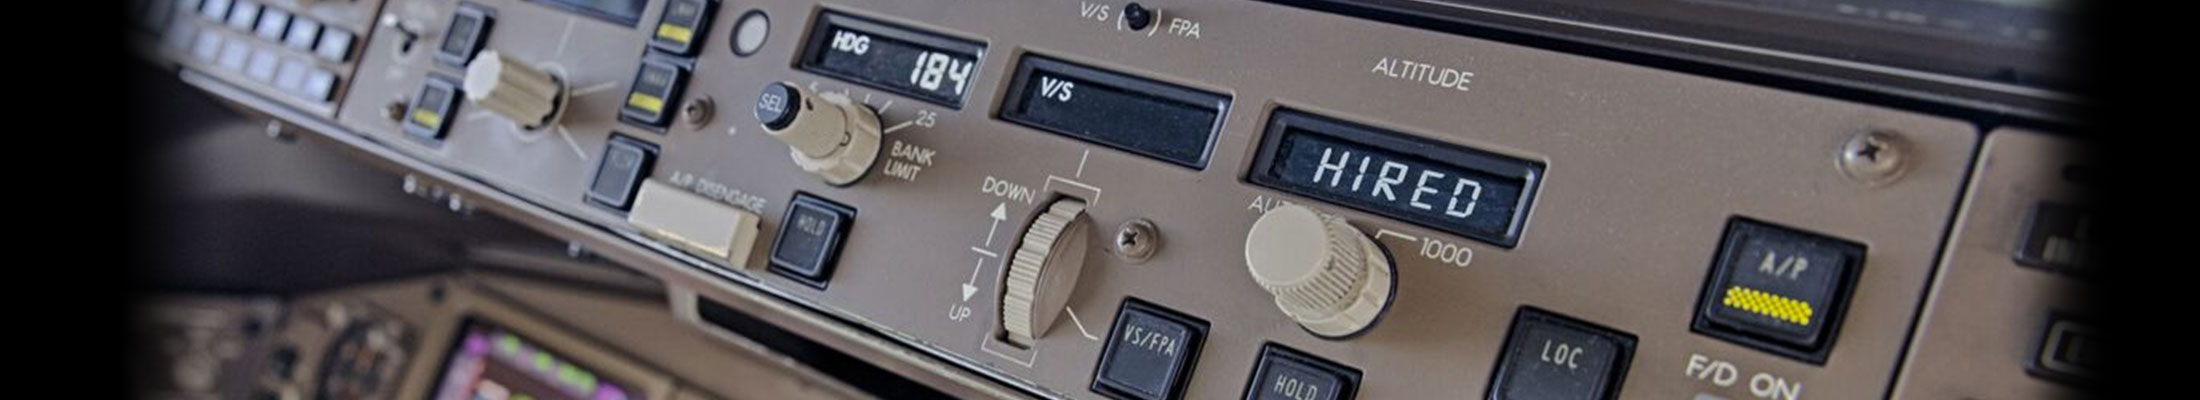 checked and set airline pilot consultation services